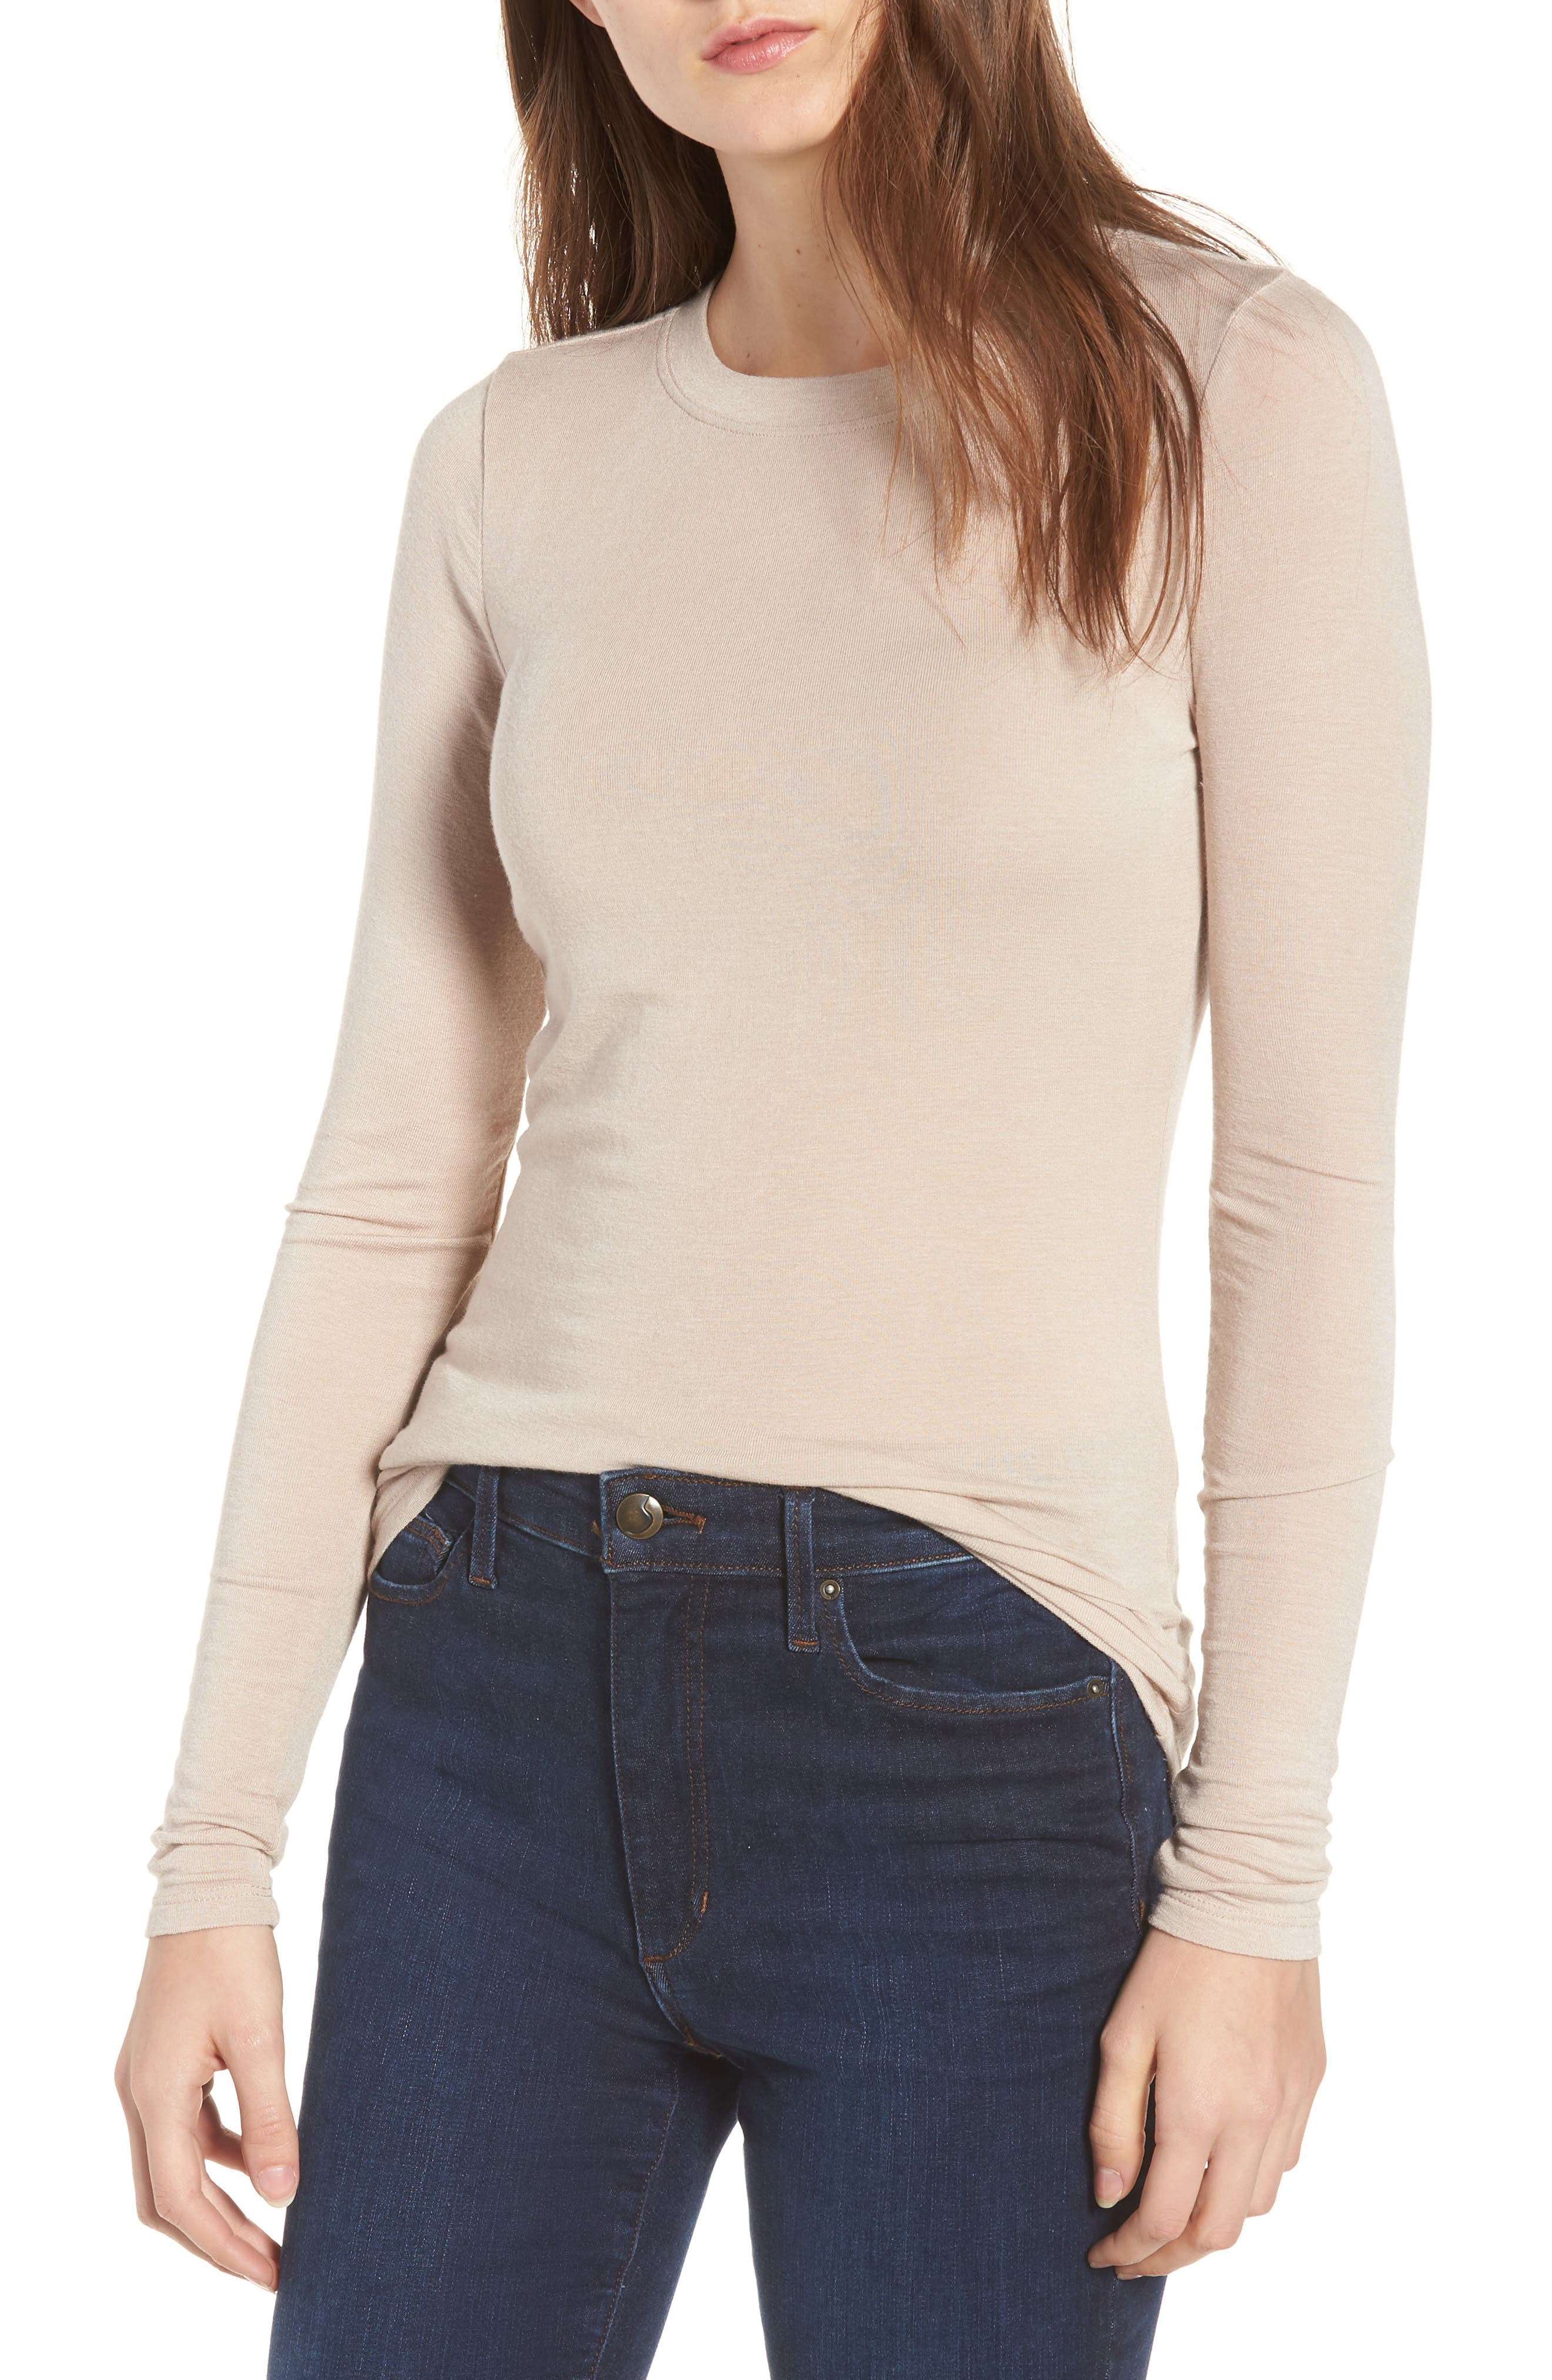 A stretchy modal blend lends definition to a semi-sheer long-sleeve tee that is ideal for cold-weather layering or standalone casual wear when the sun comes out. Style Name: Chelsea28 Layering Tee. Style Number: 729588. Available in stores.